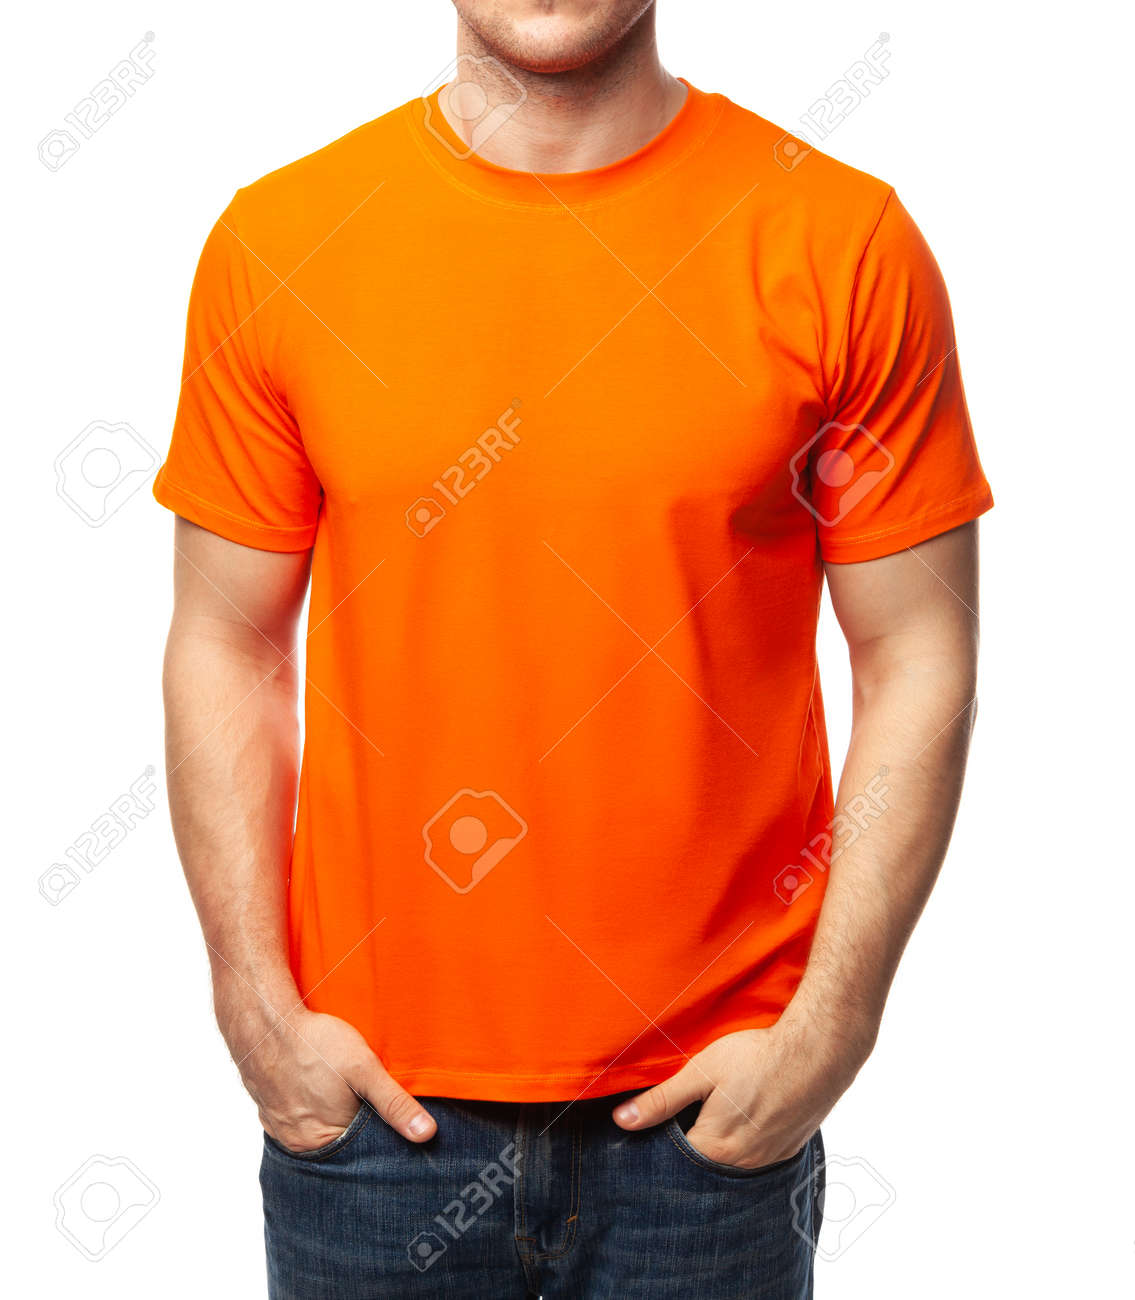 Young fit man wearing blank orange shortsleeve cotton T-Shirt. Mock up template isolated on a white background - 166590623